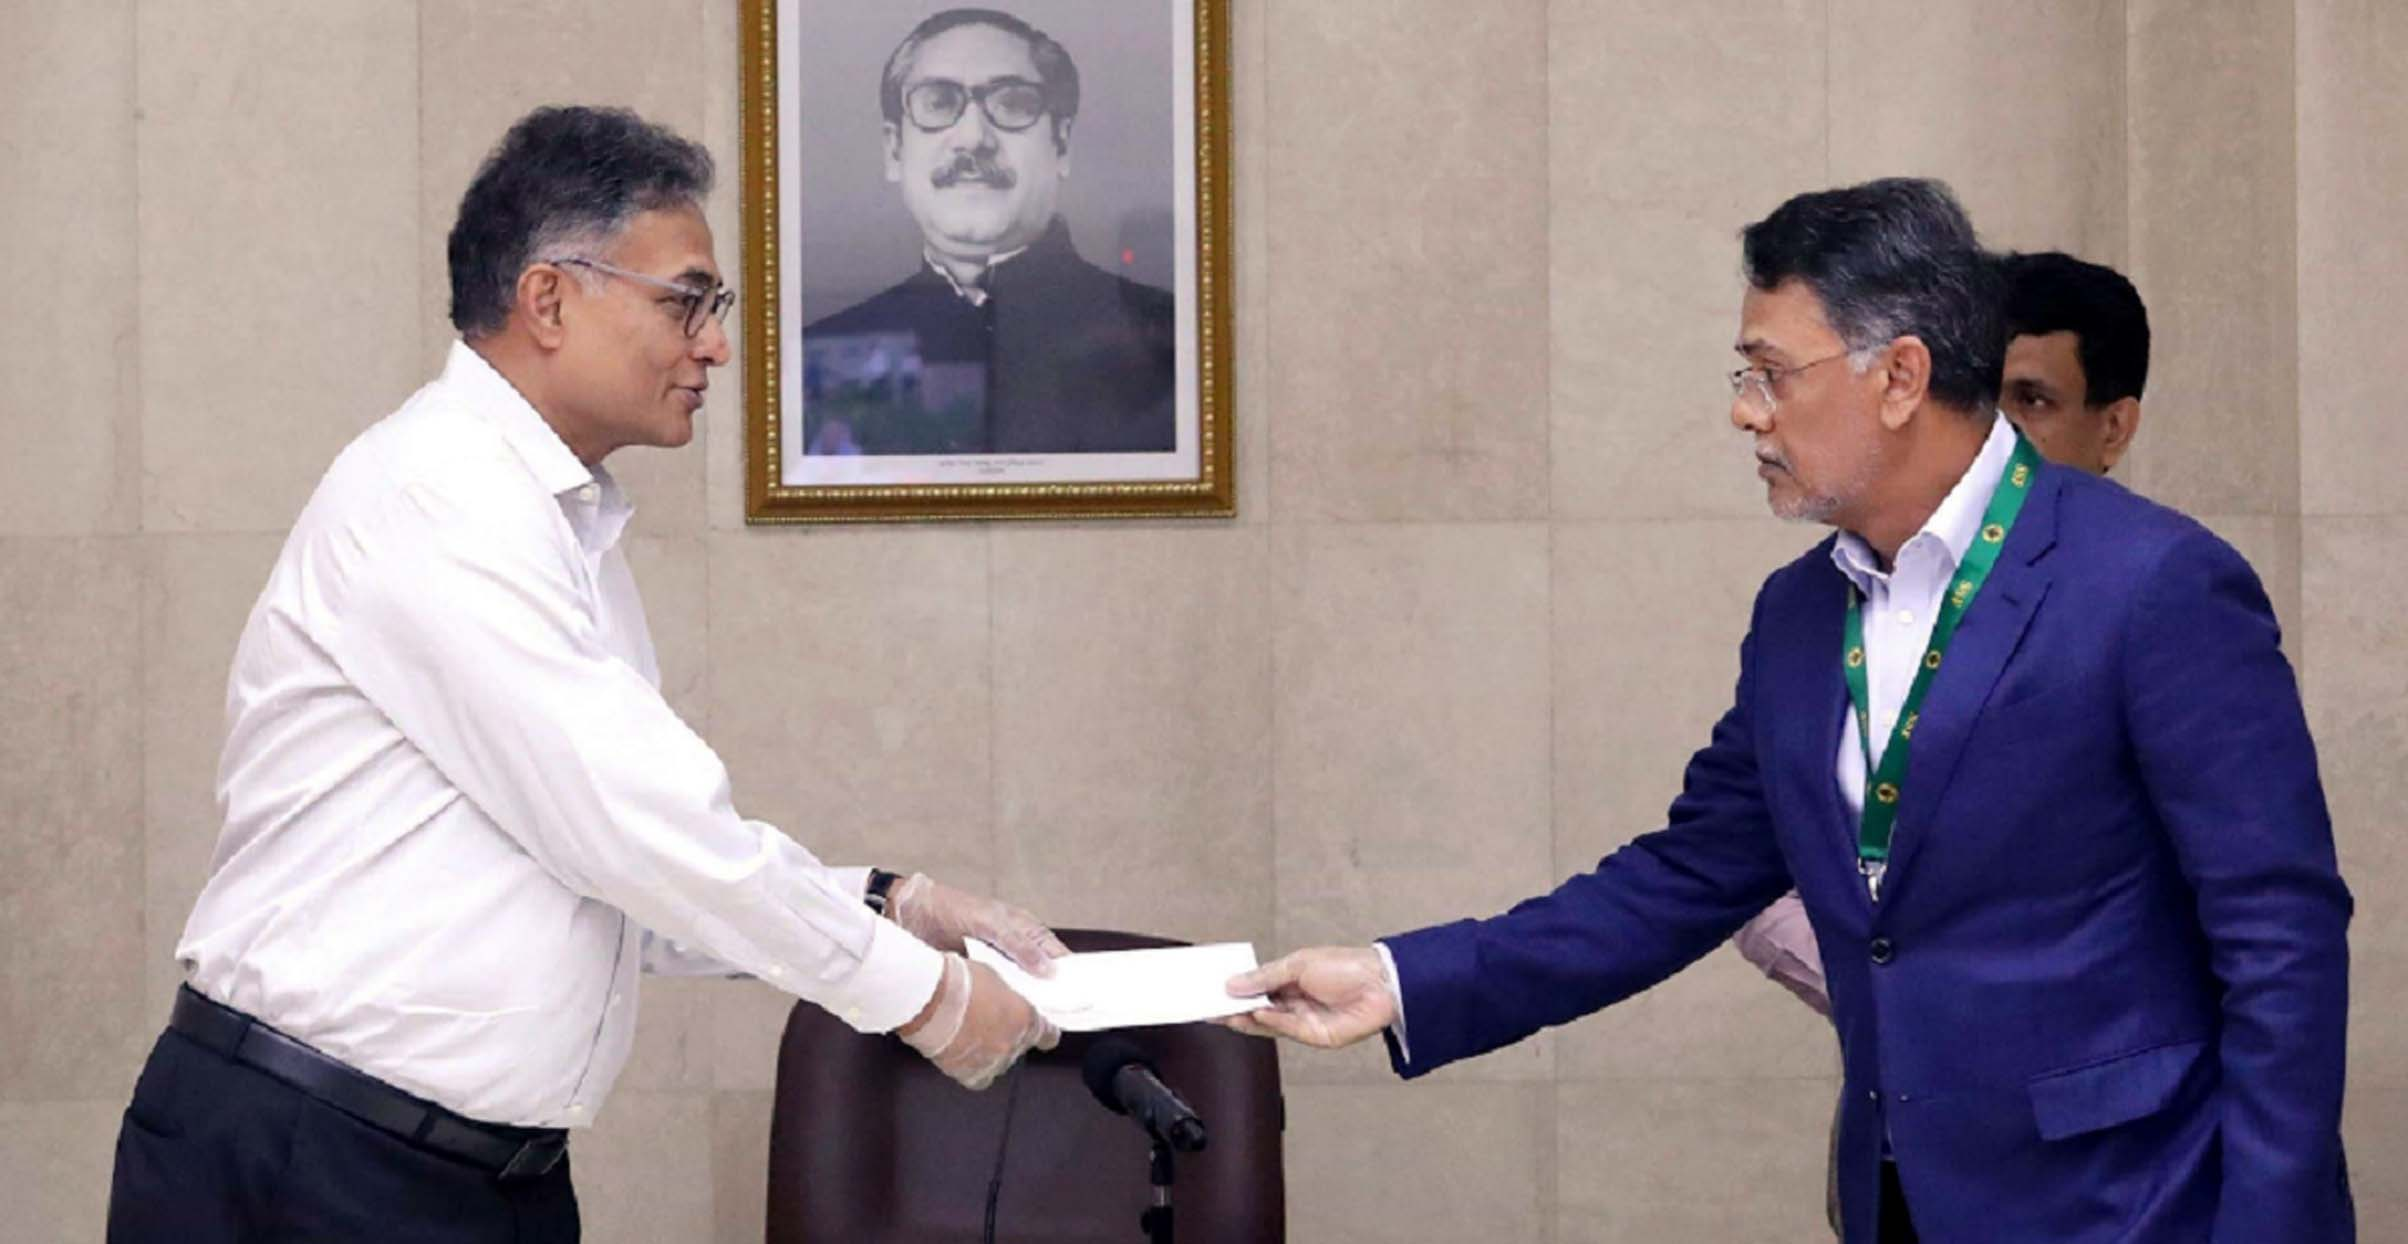 Md Farid Khan, Vice-Chairman of Summit Group of Companies, handing over a cheque of Tk 3cr to Dr Ahmad Kaikaus, Principal Secretary of the Prime Minister Sheikh Hasina, to help daily wage earners at the PM Office on Sunday.